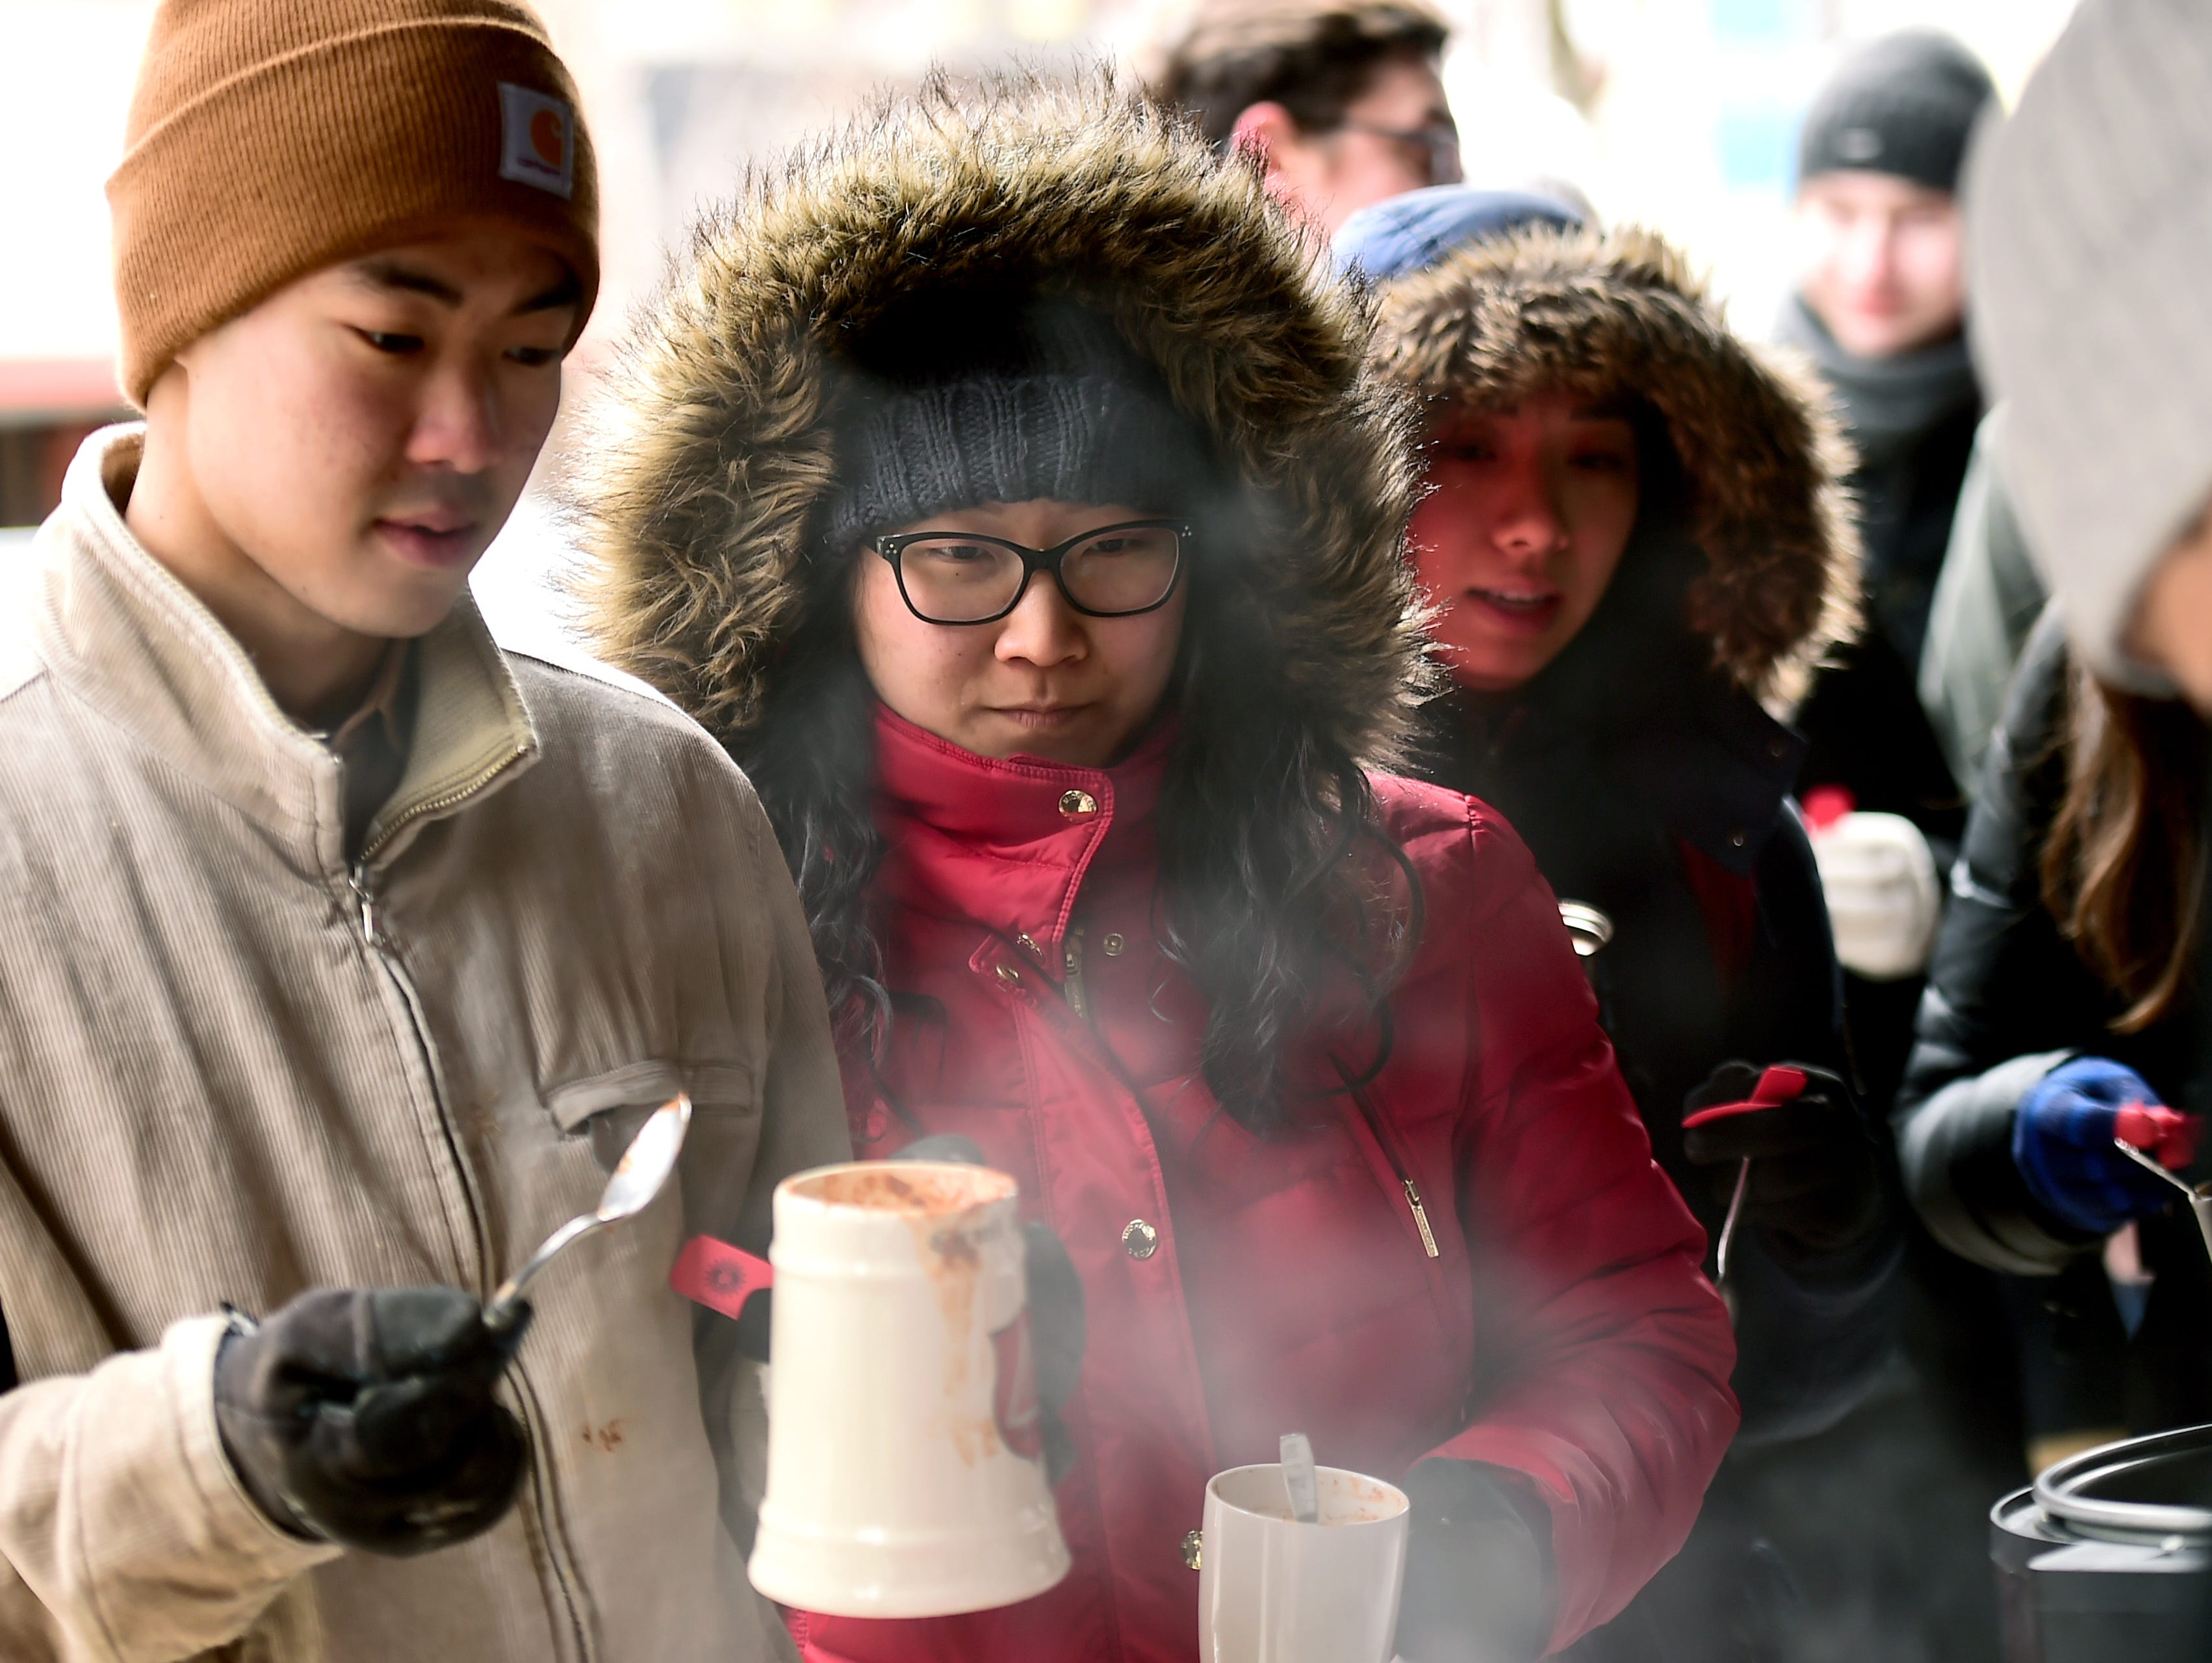 Mia's served up hot chili to the long line of people waiting for a taste during the Downtown Ithaca Chili Cook-off on Saturday, February 8, 2019.